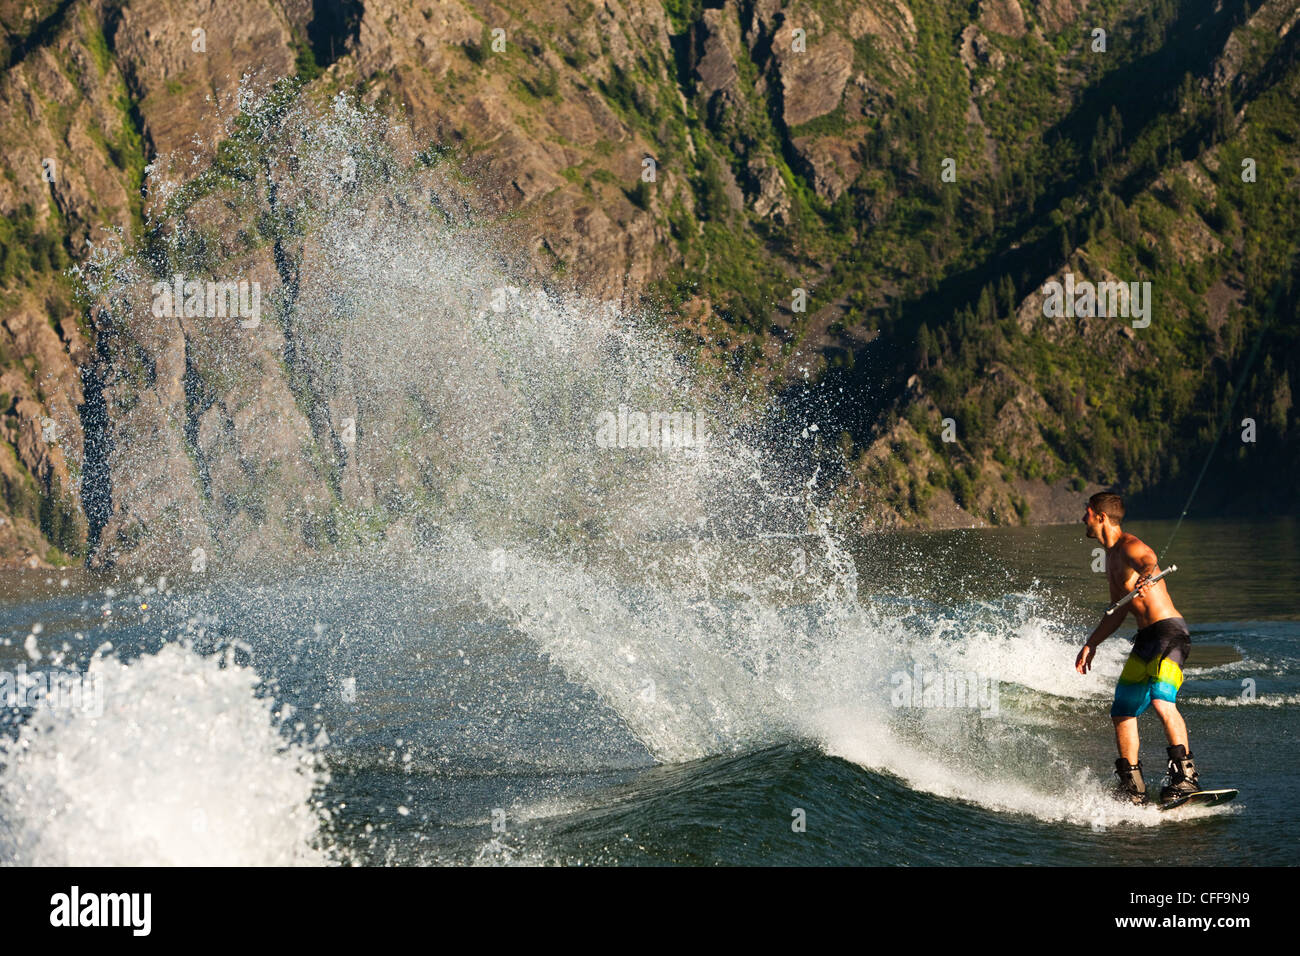 A athletic male wakeboarder carves and slahes the wake at sunset on a lake in Idaho. - Stock Image